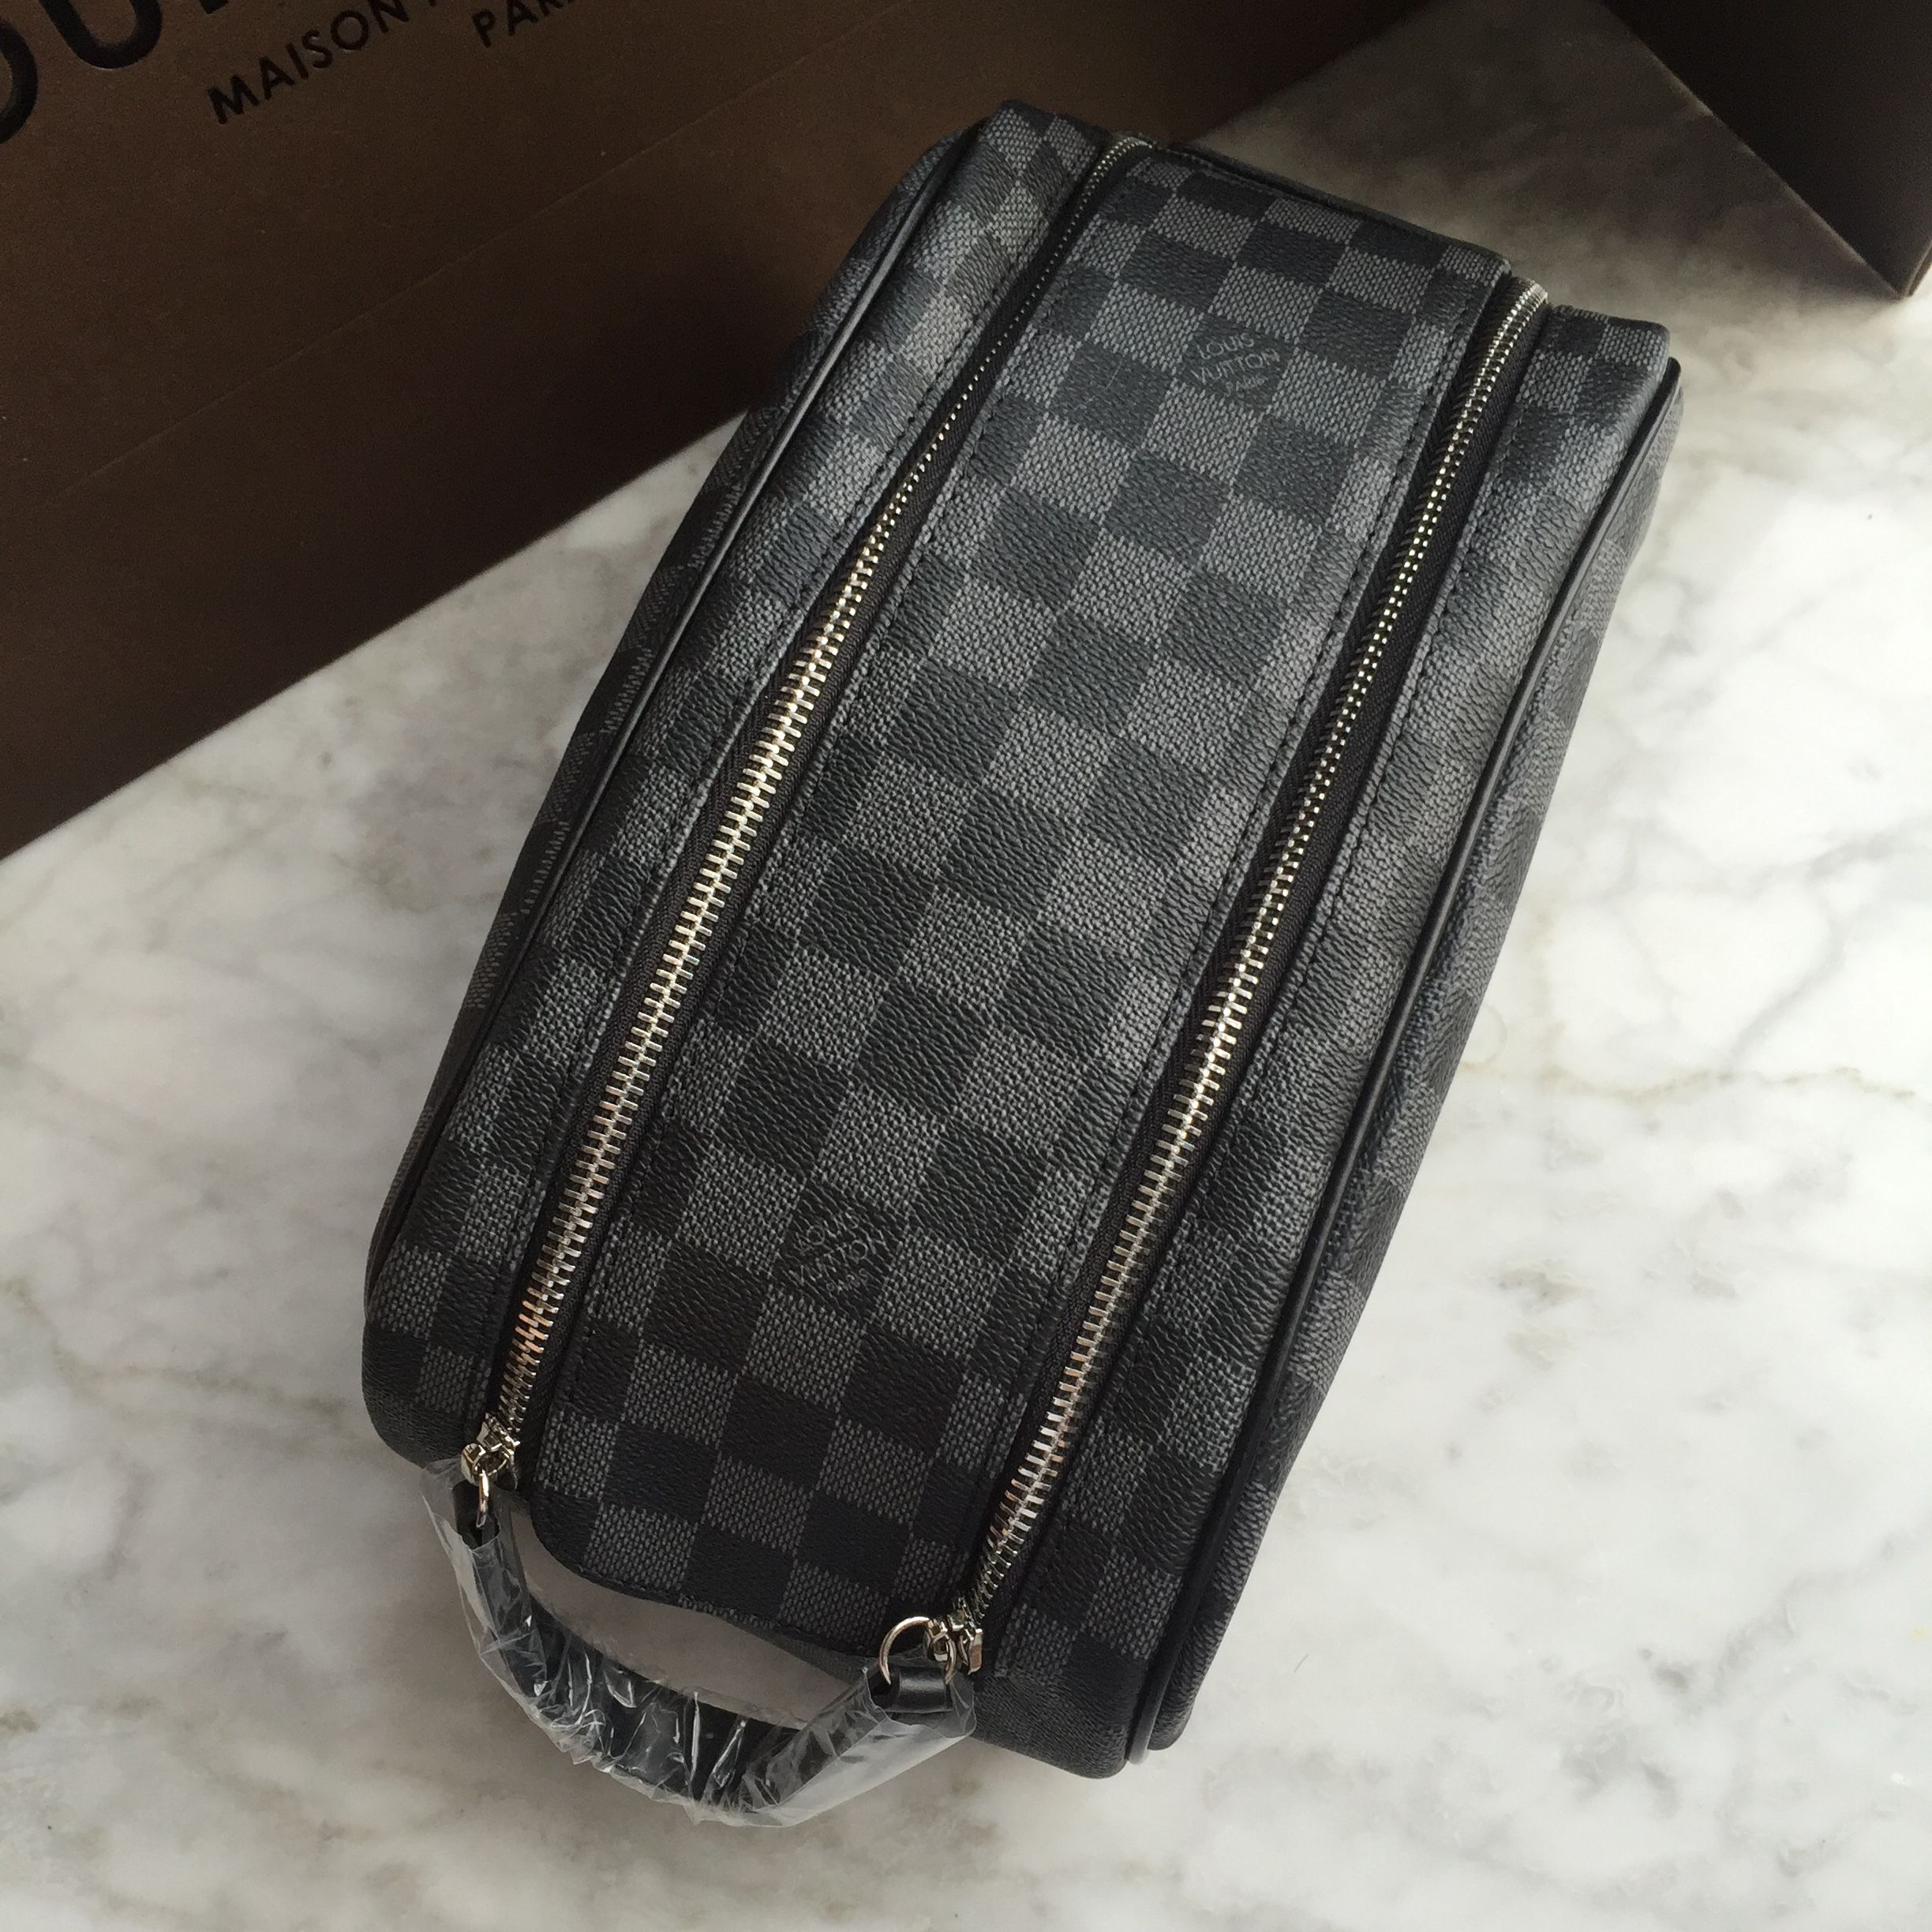 647399b23aa6 Louis Vuitton Lv toilet make up bag Damier graphite | Luggage in ...